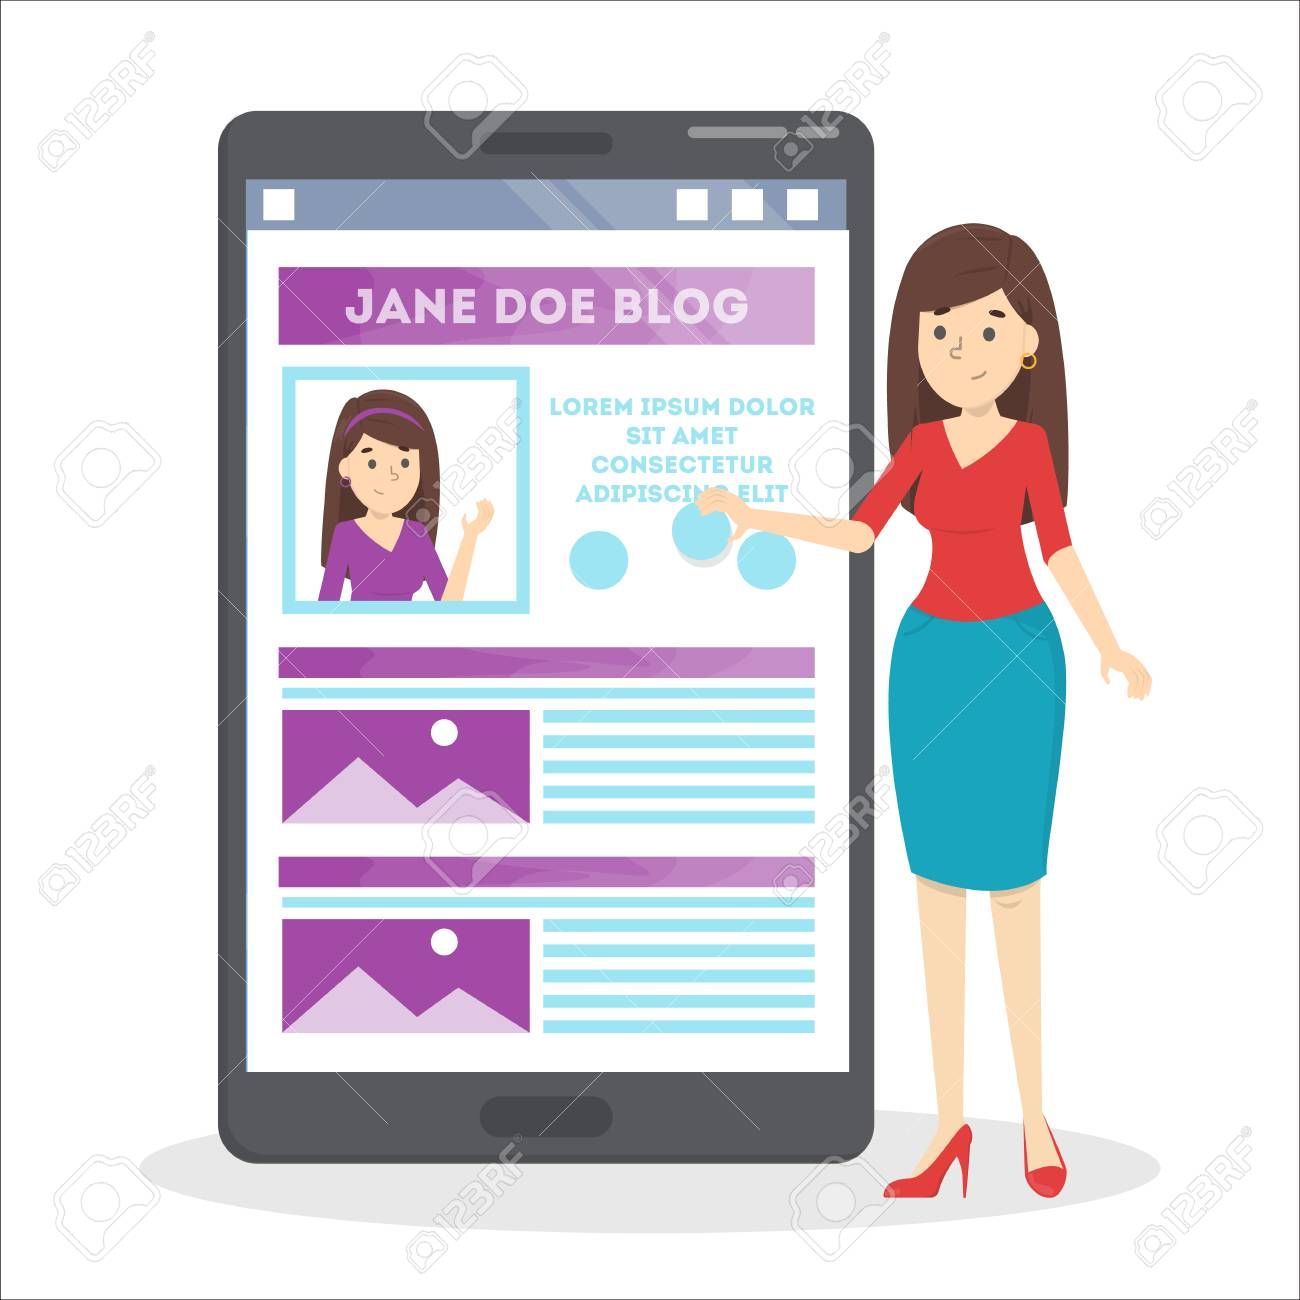 Woman Edit Profile In Social Network Web Page Design On Mobile